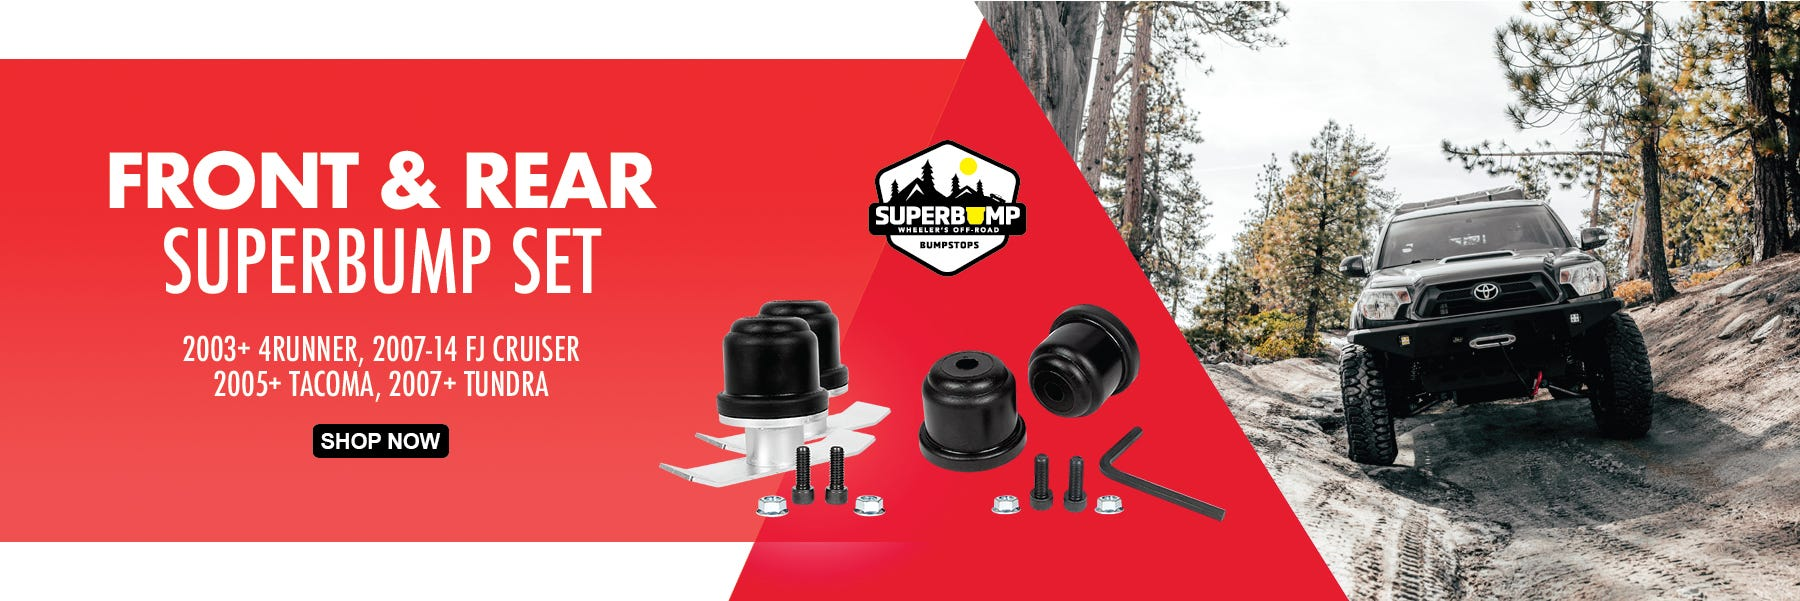 SuperBump Complete Front & Rear Bumpstop Kits from Wheeler's Off-Road